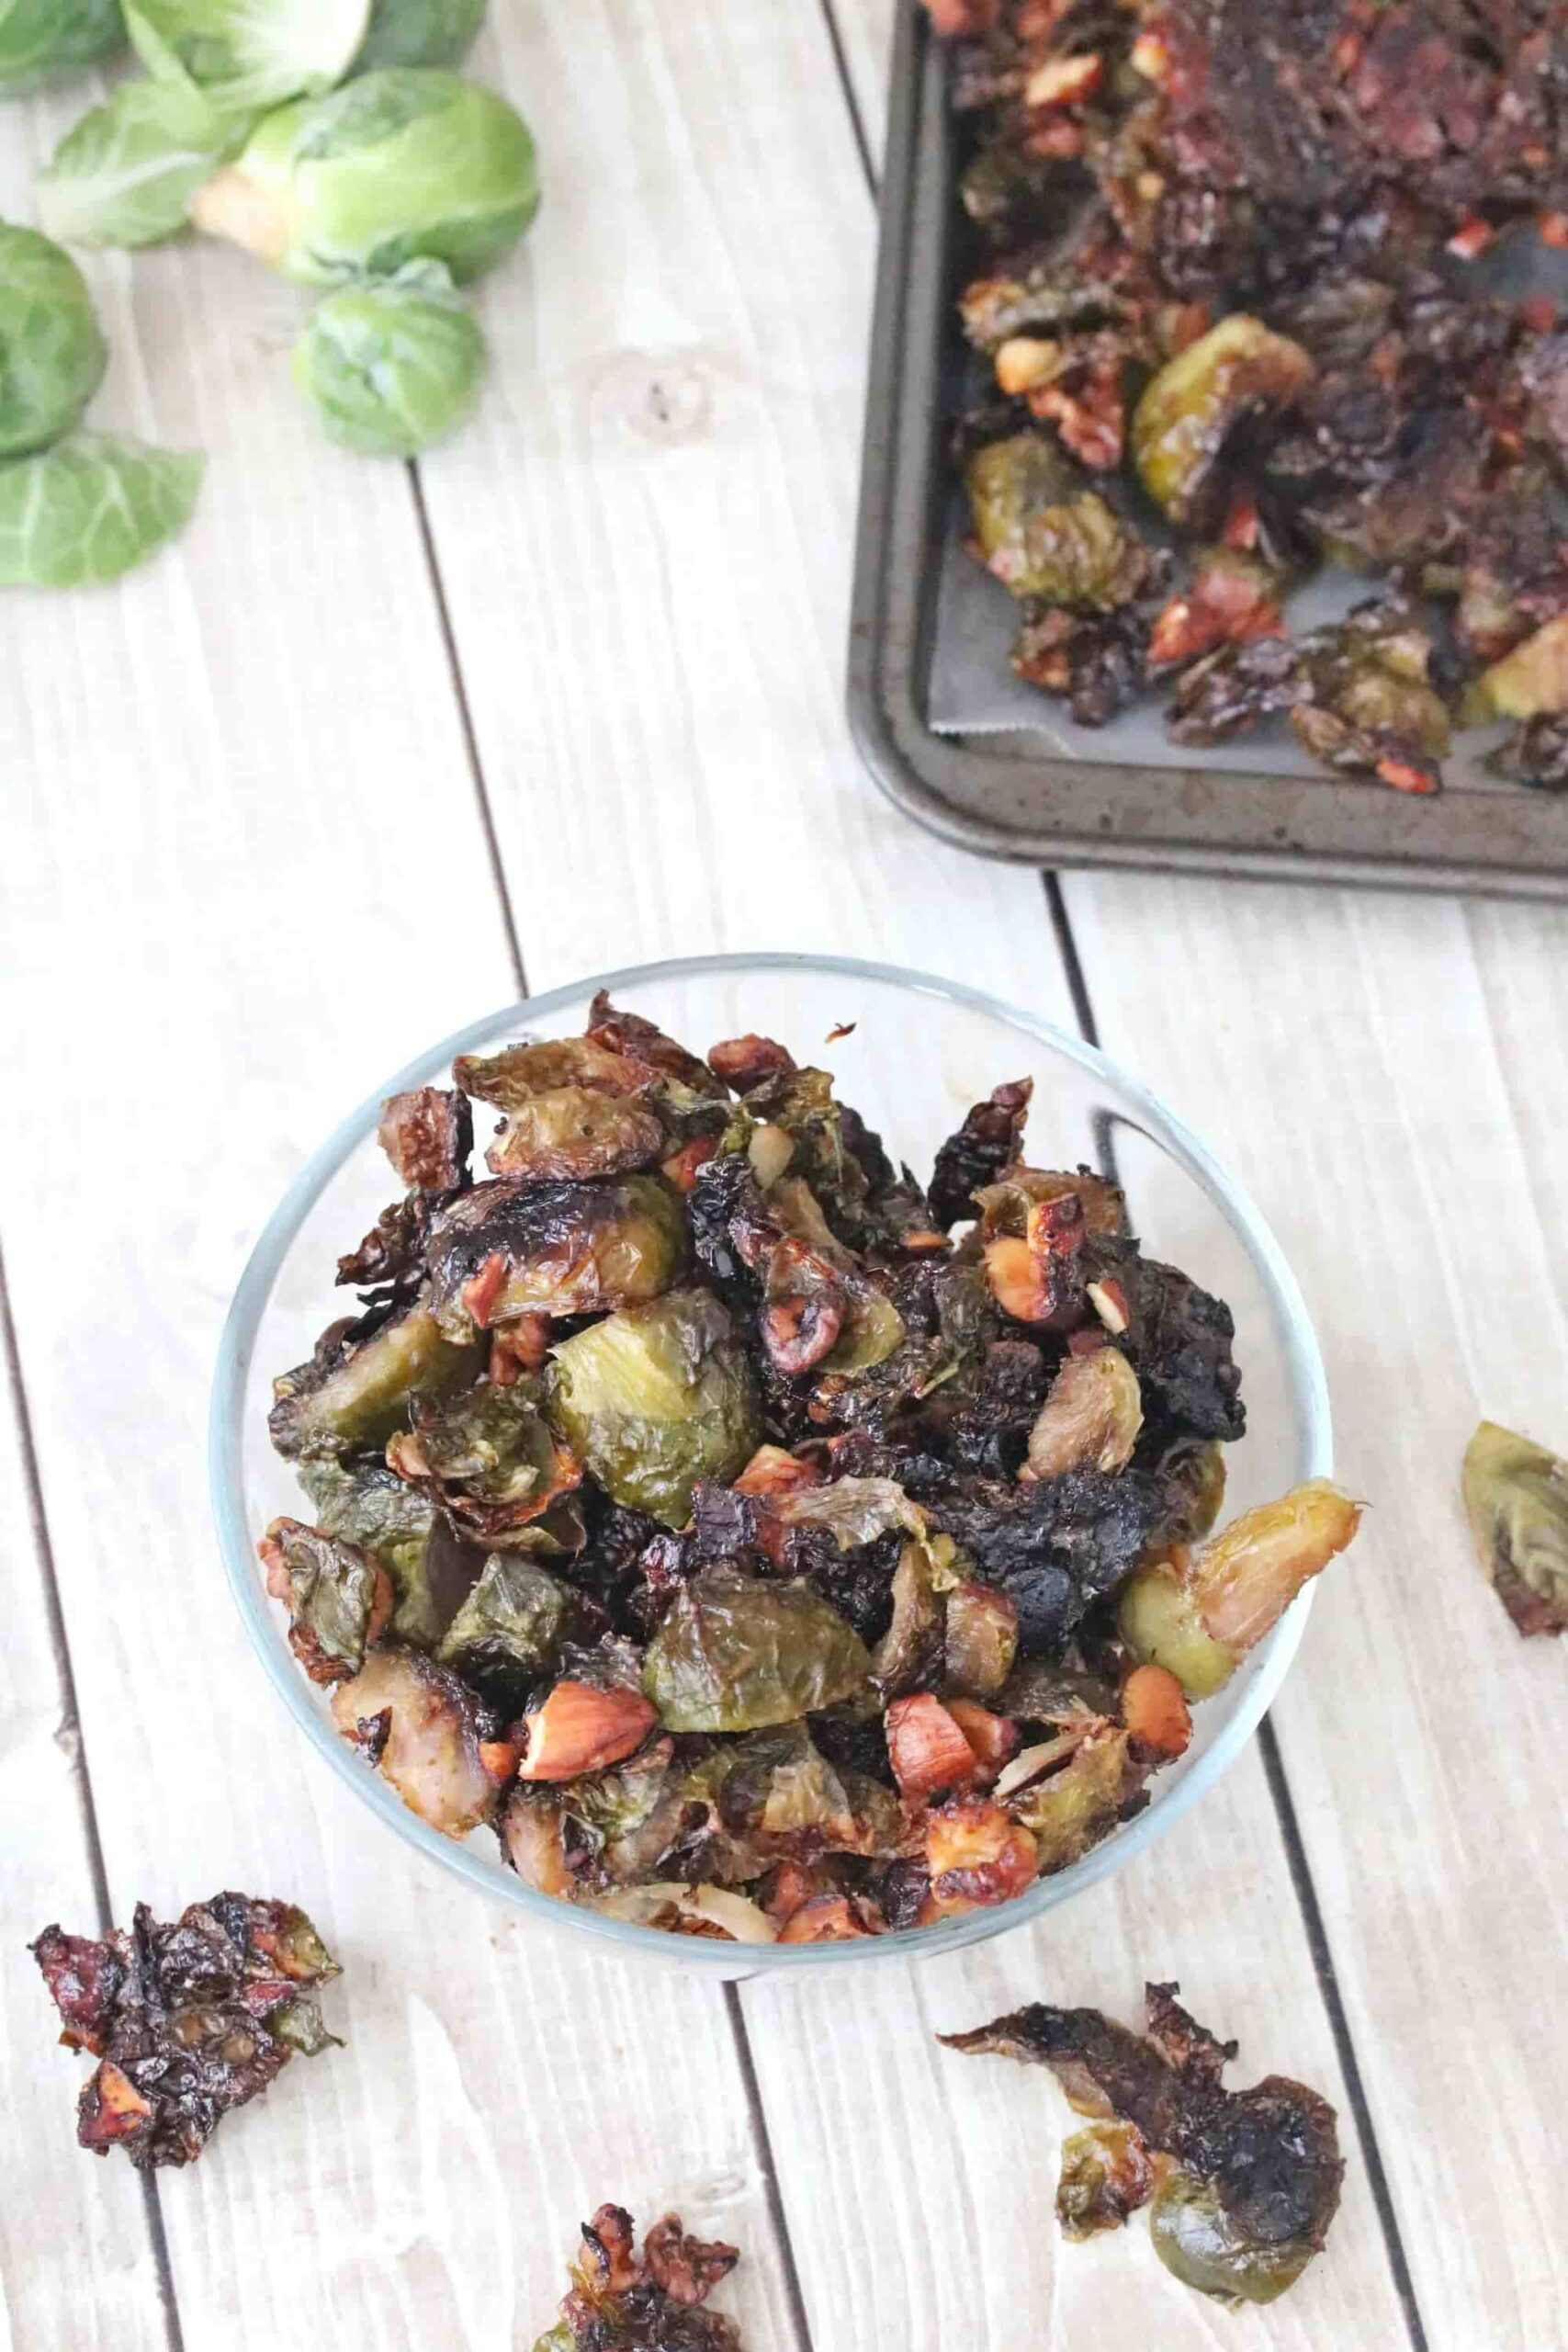 A bowl of brussels sprouts next to a pan of them.